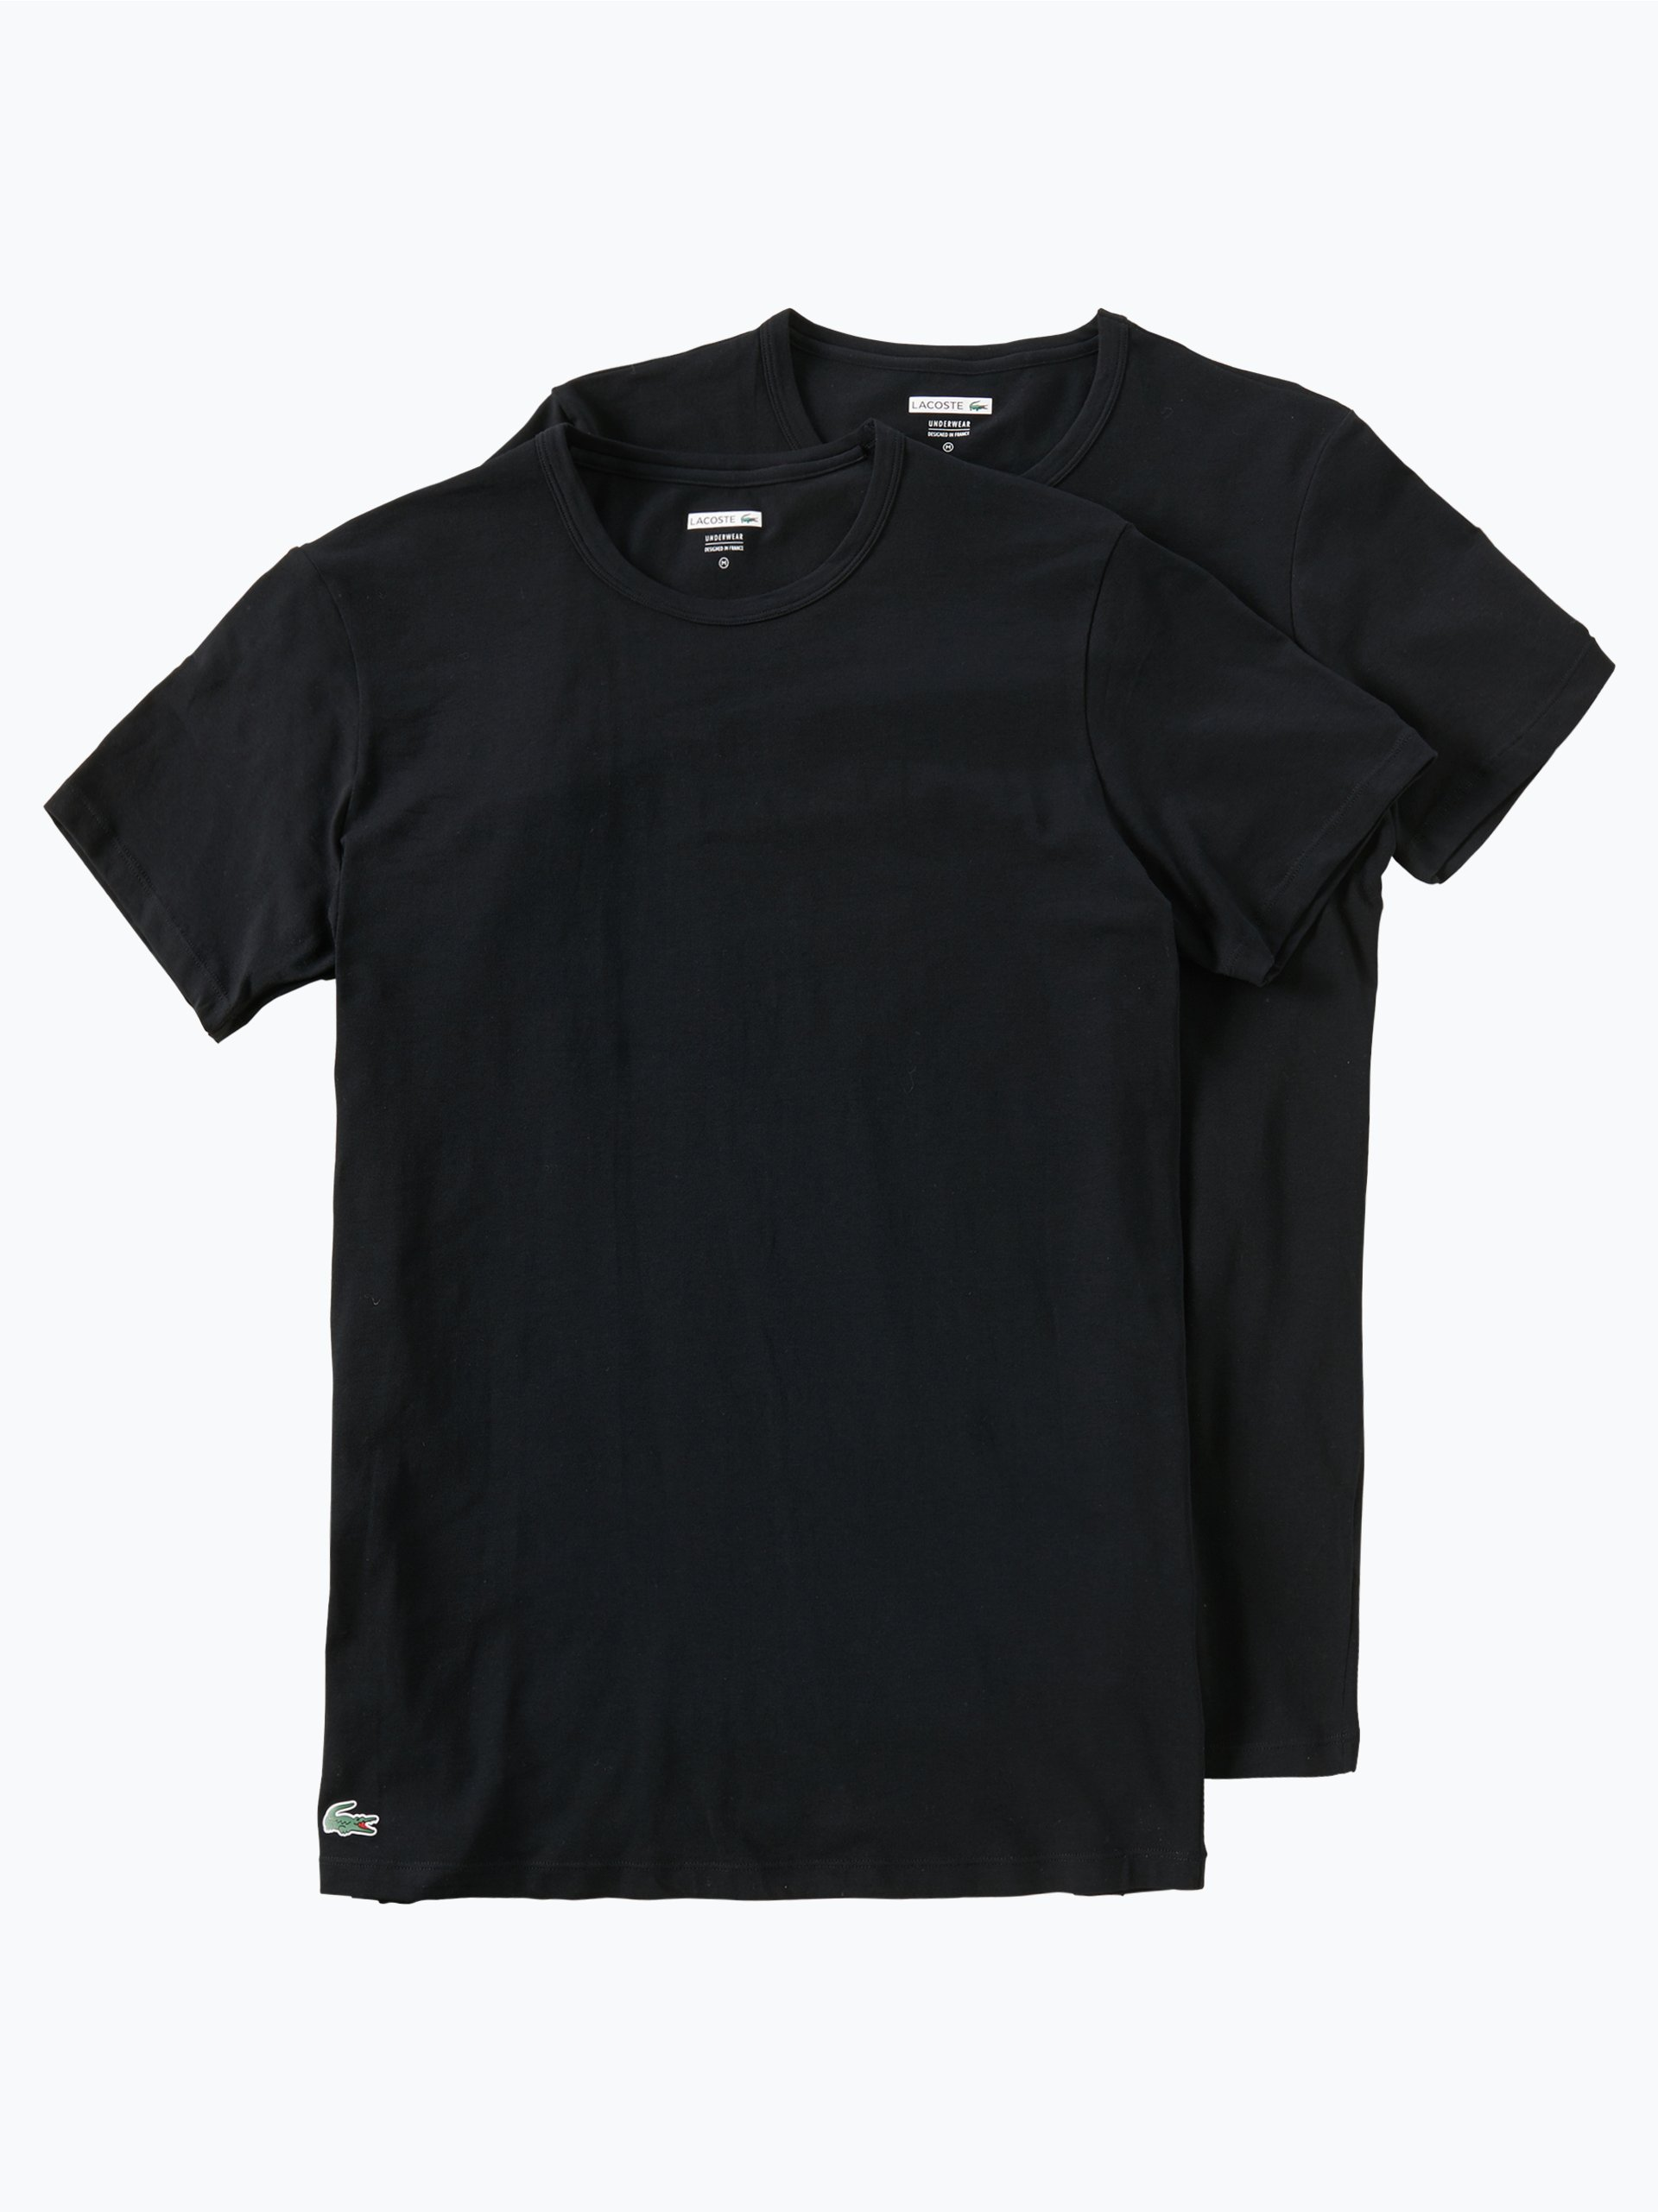 lacoste herren t shirt im 2er pack schwarz uni online. Black Bedroom Furniture Sets. Home Design Ideas